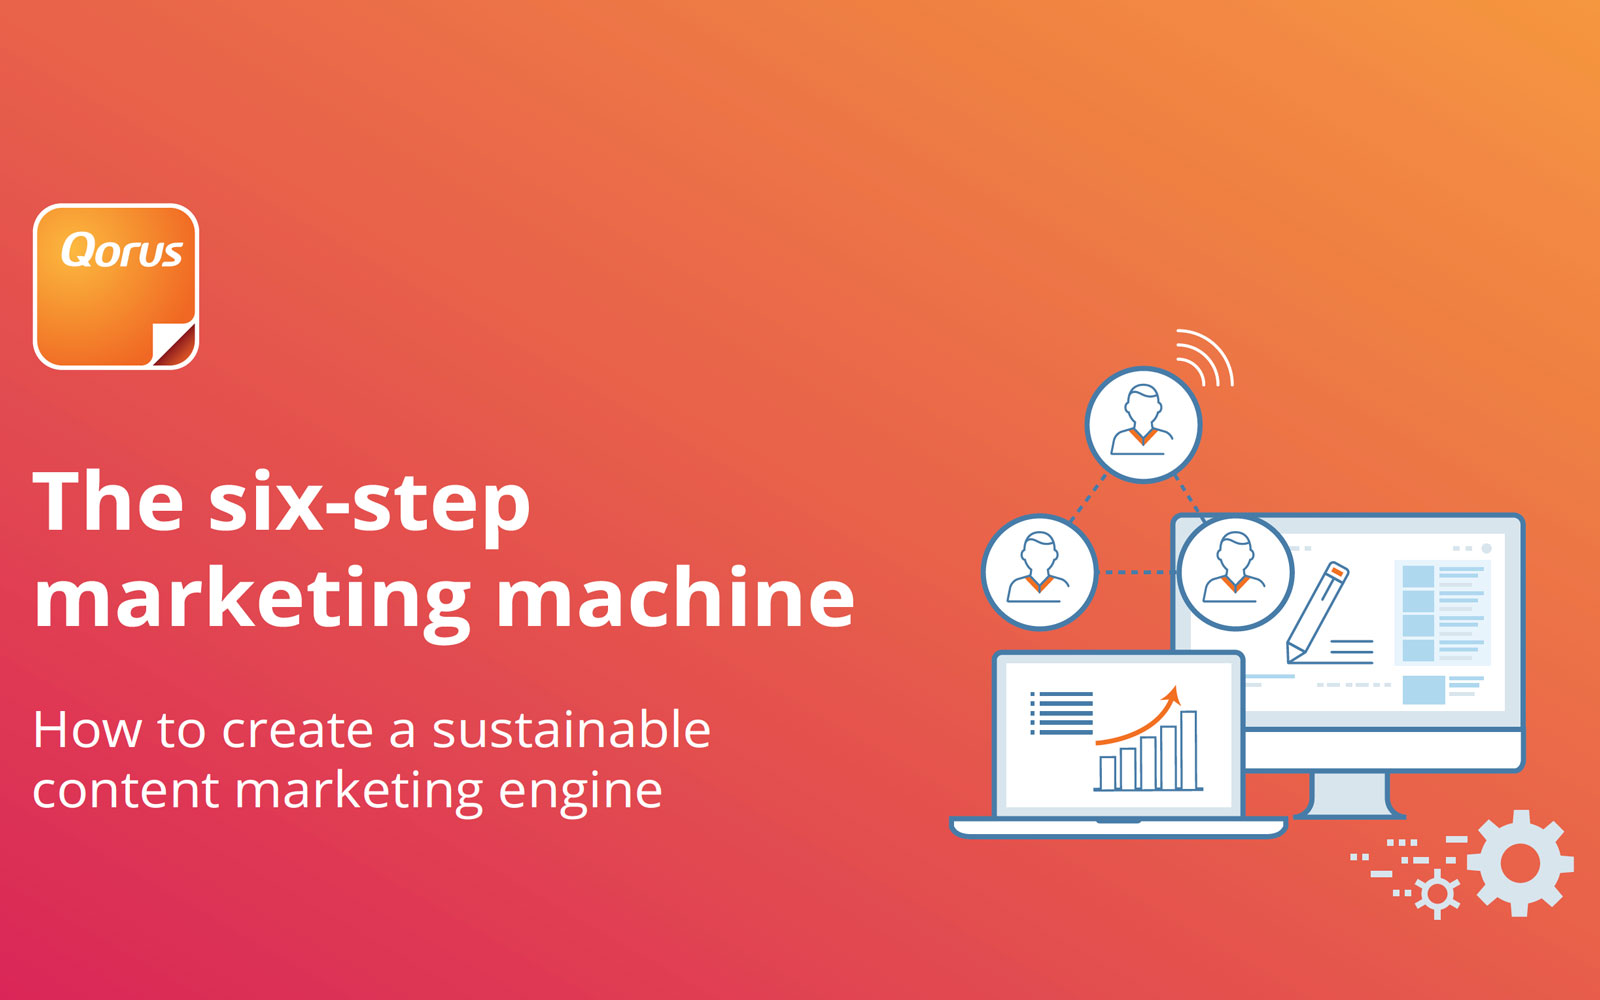 The six-step marketing machine implemented by Qorus